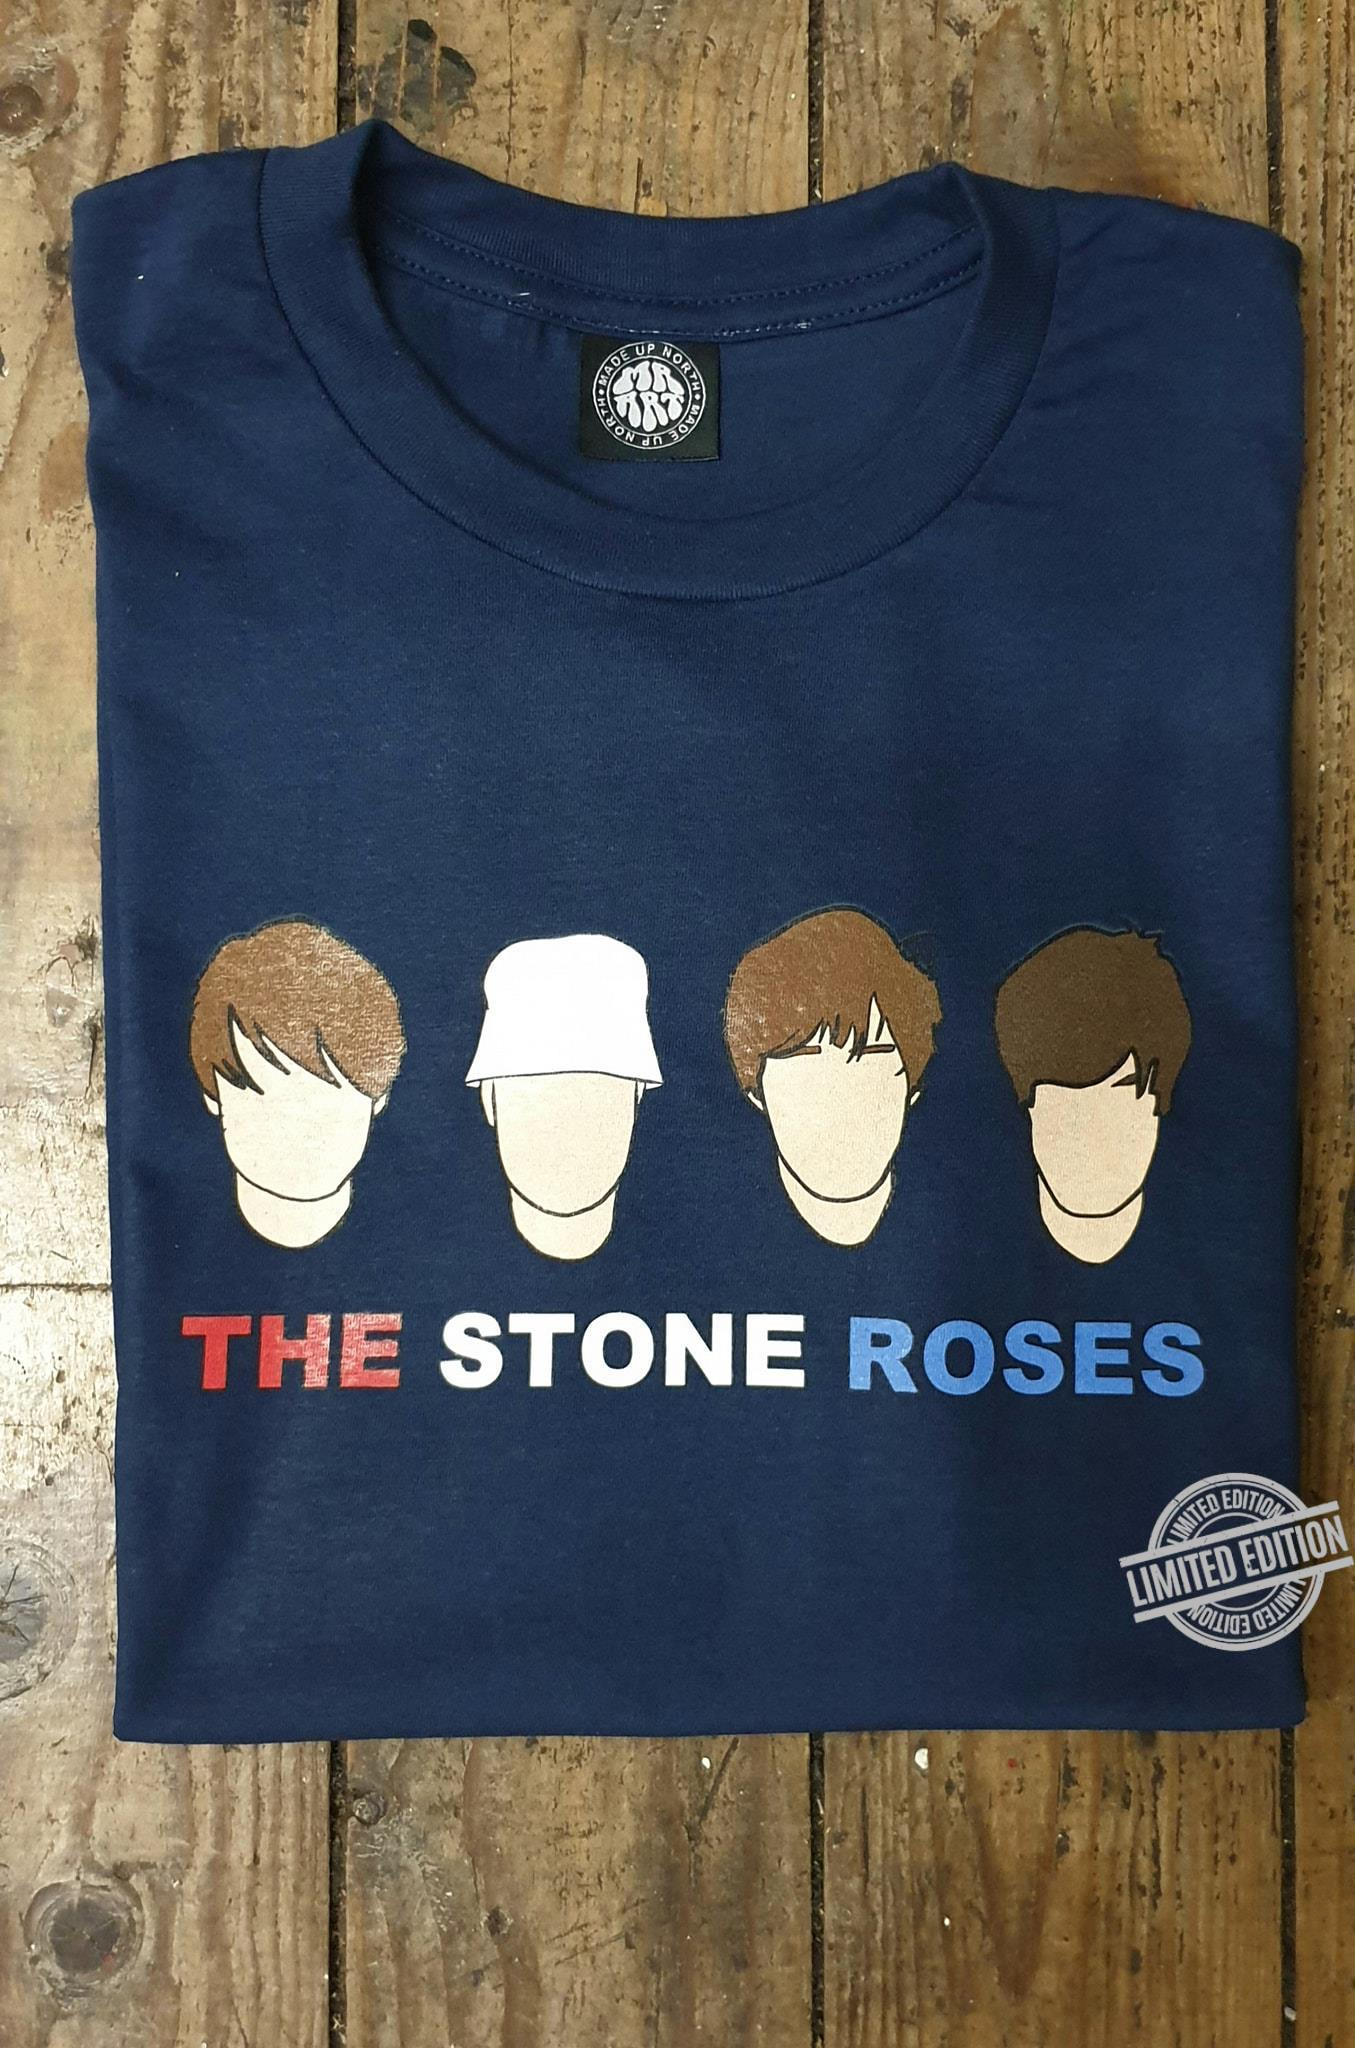 The Stone Roses Shirt